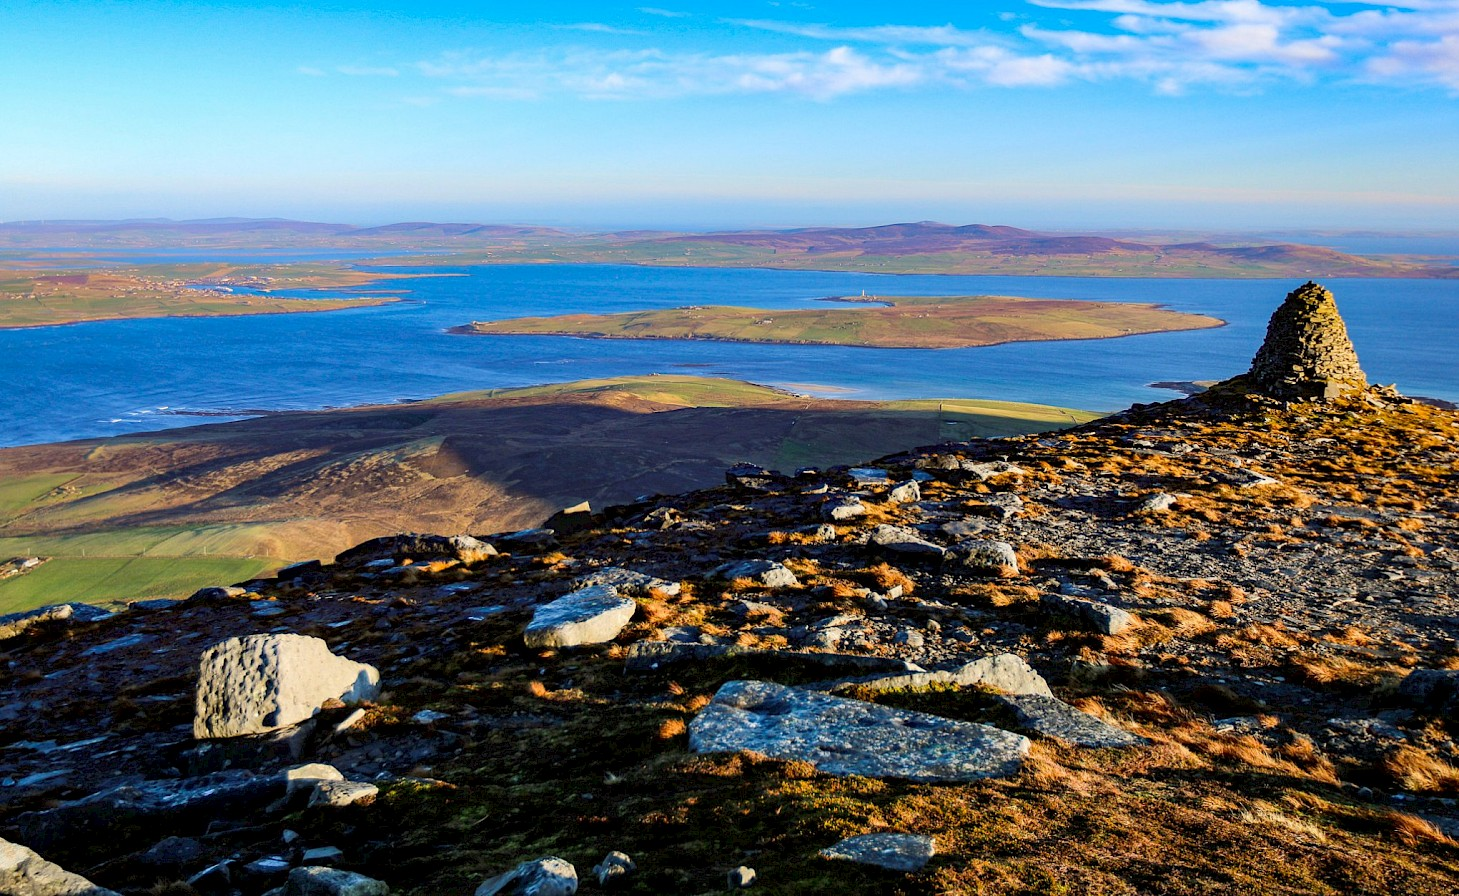 The view of the Orkney mainland from the top of the Cuilags, Hoy - image by Graham Campbell